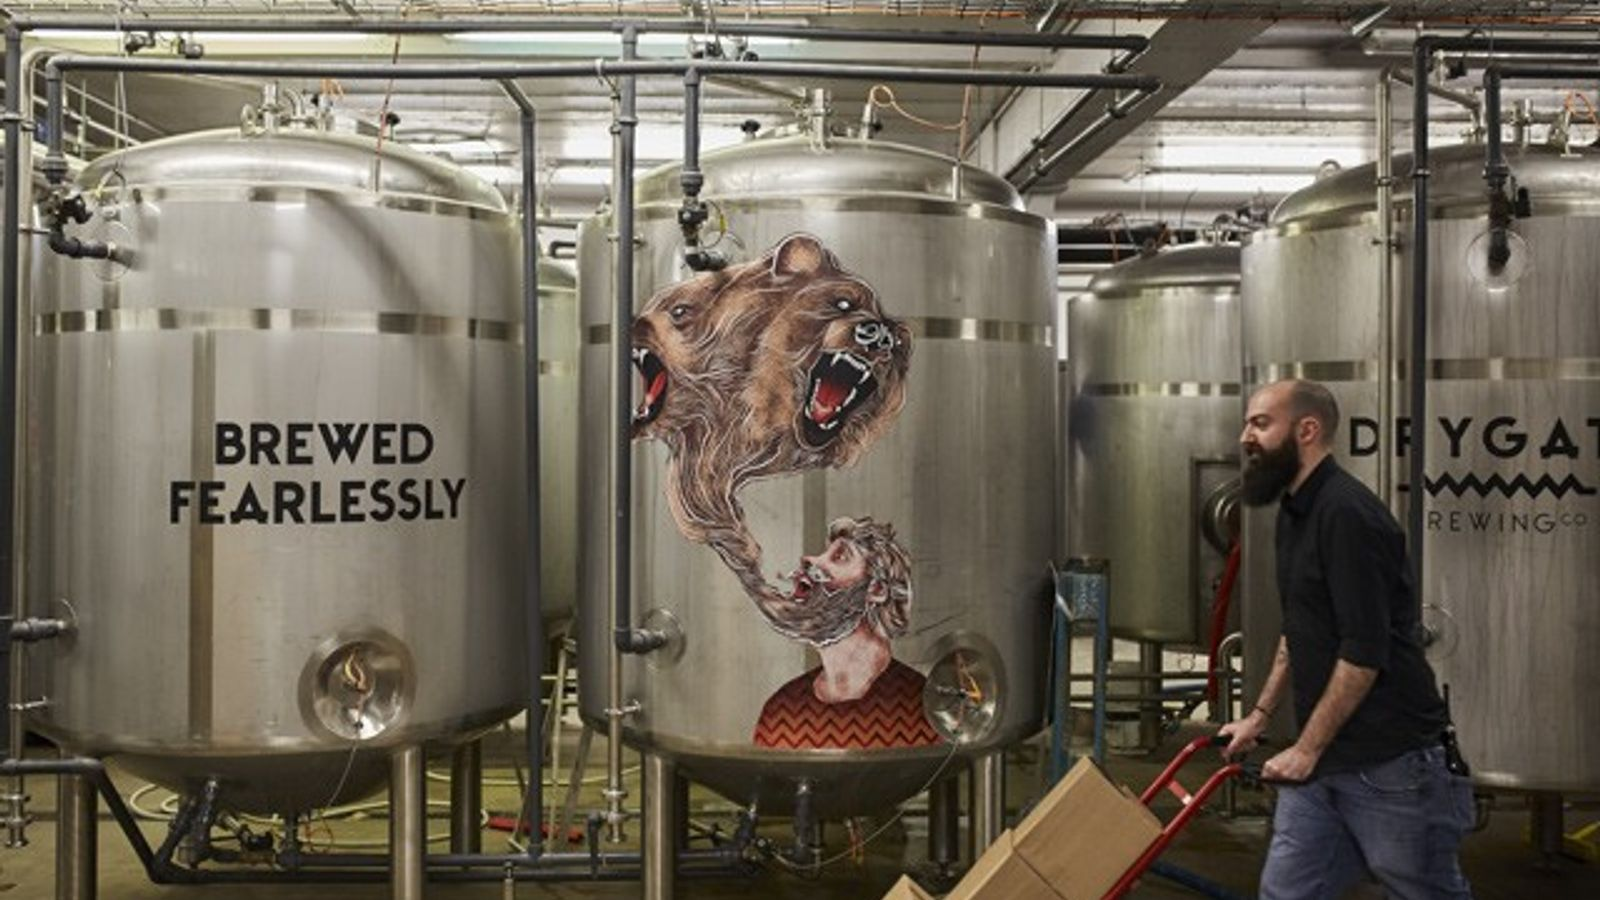 Fermentation tanks at Drygate Brewery